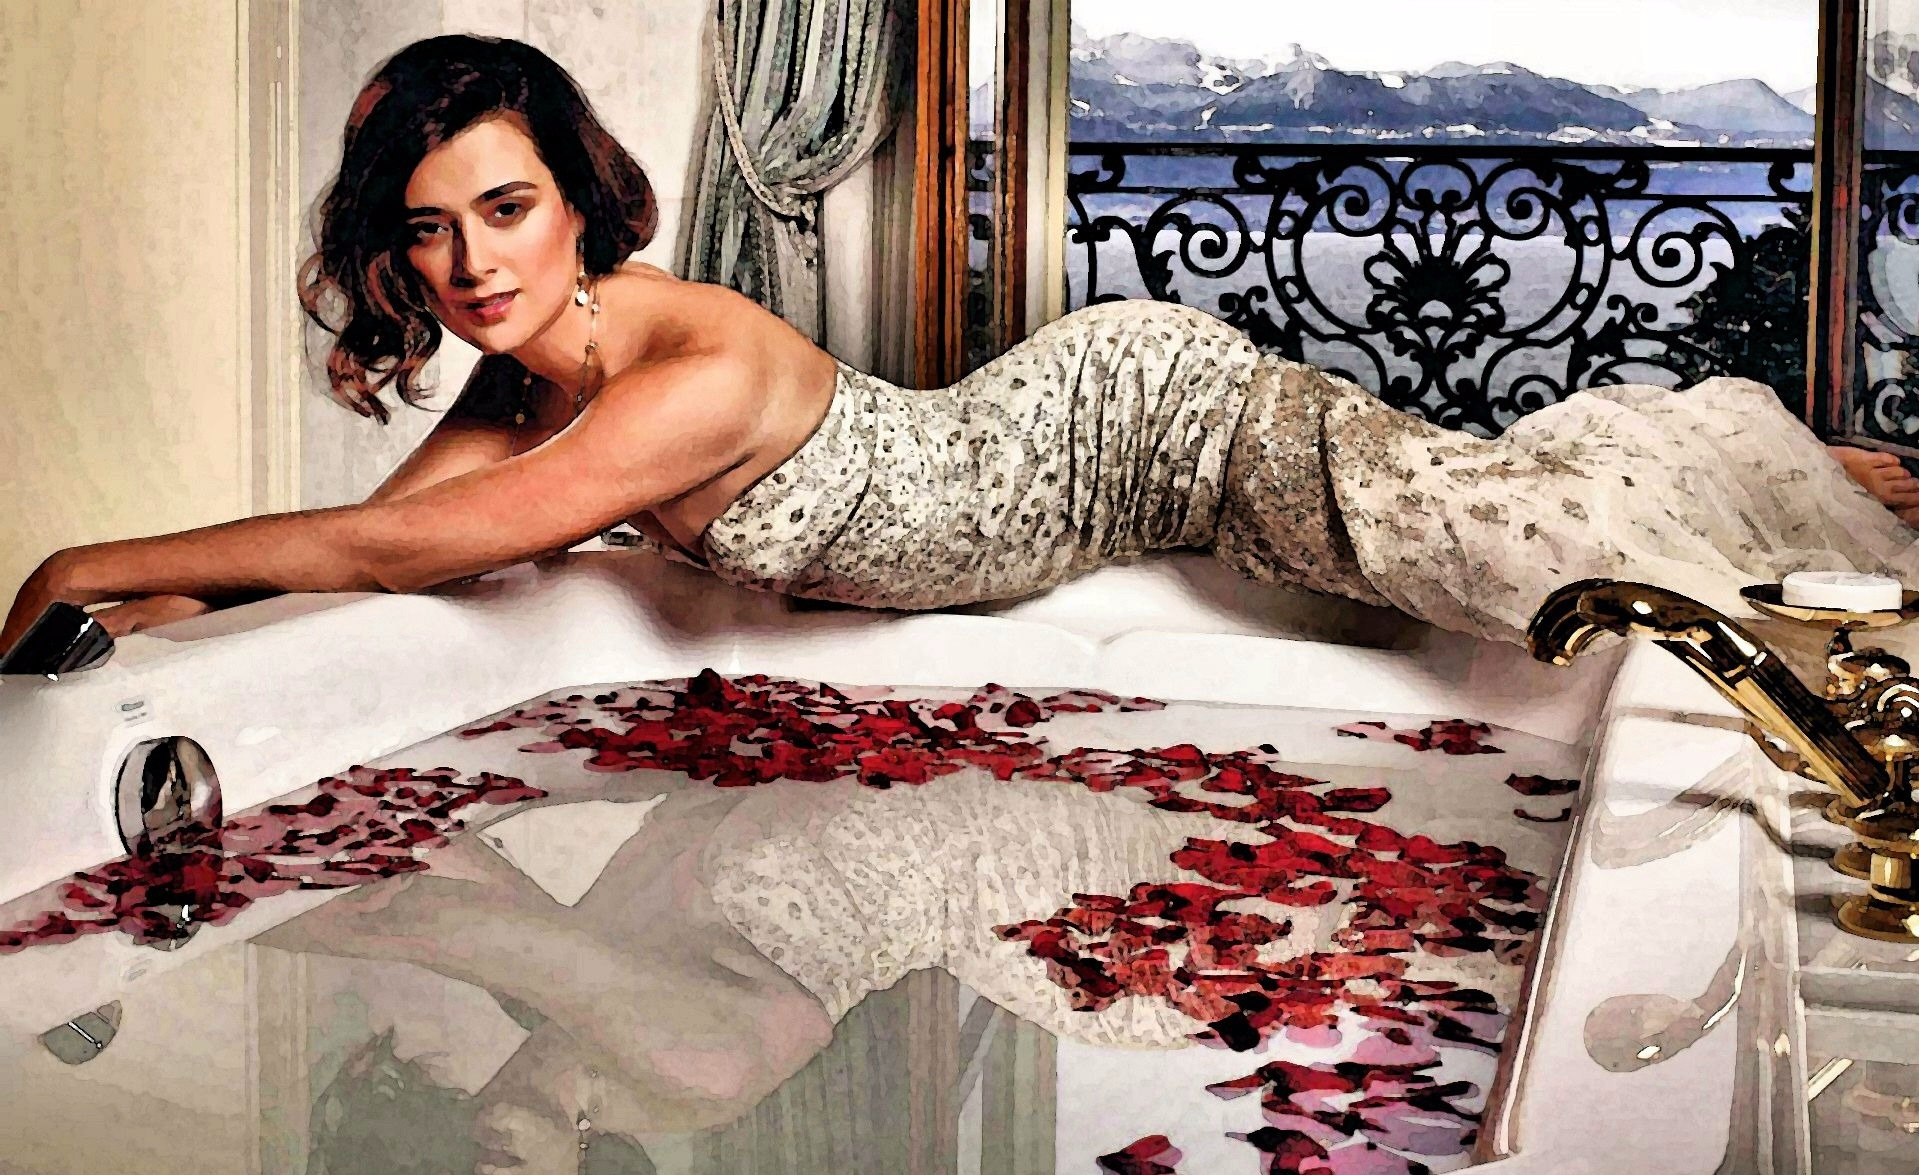 Cote De Paulo is looking elegantly sexy in her photoshoot where she dresses in a silver and white gown.